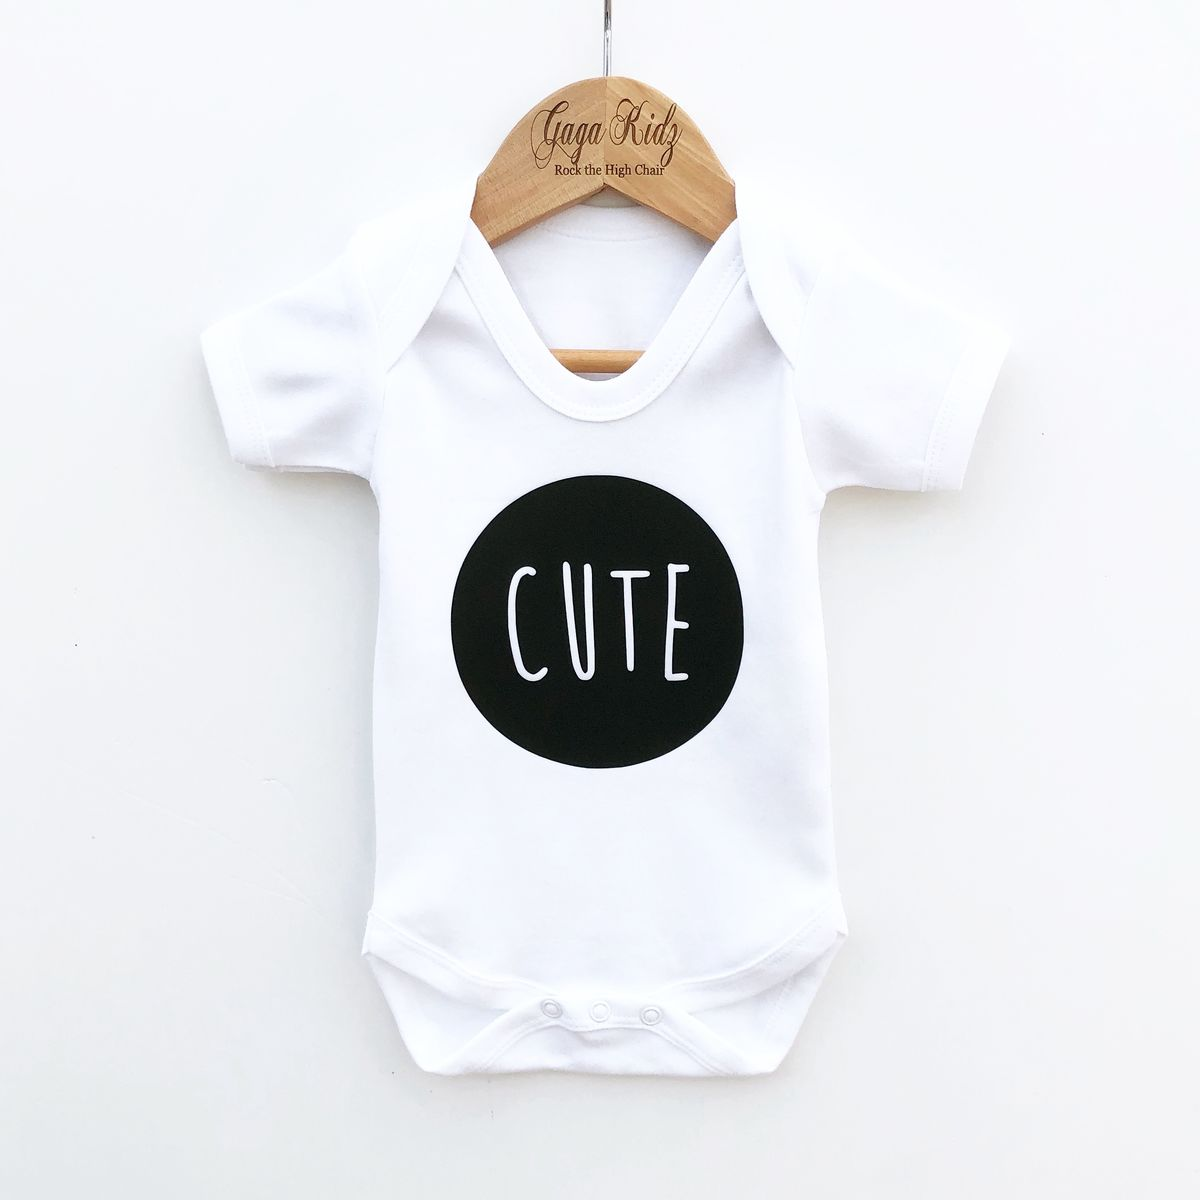 Cute Baby/Toddler Bodysuit (various sizes) - product image